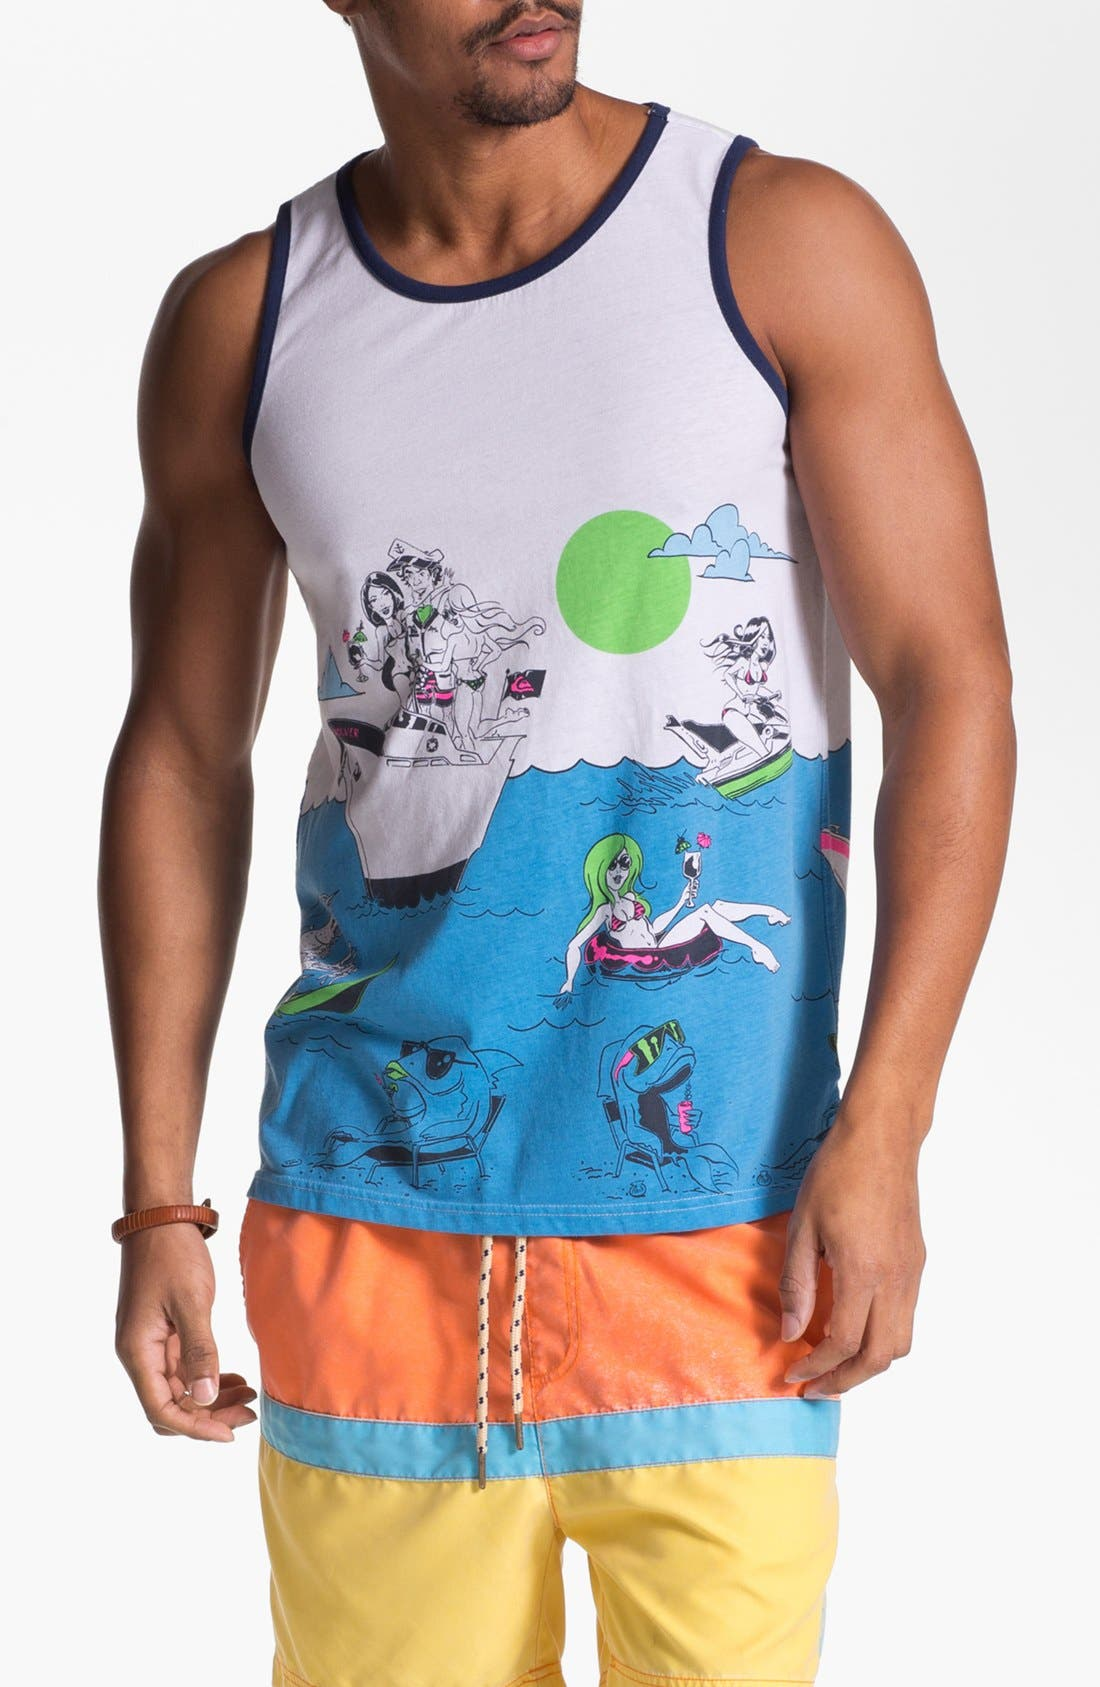 Alternate Image 1 Selected - Quiksilver 'Sinking Teeth' Graphic Tank Top